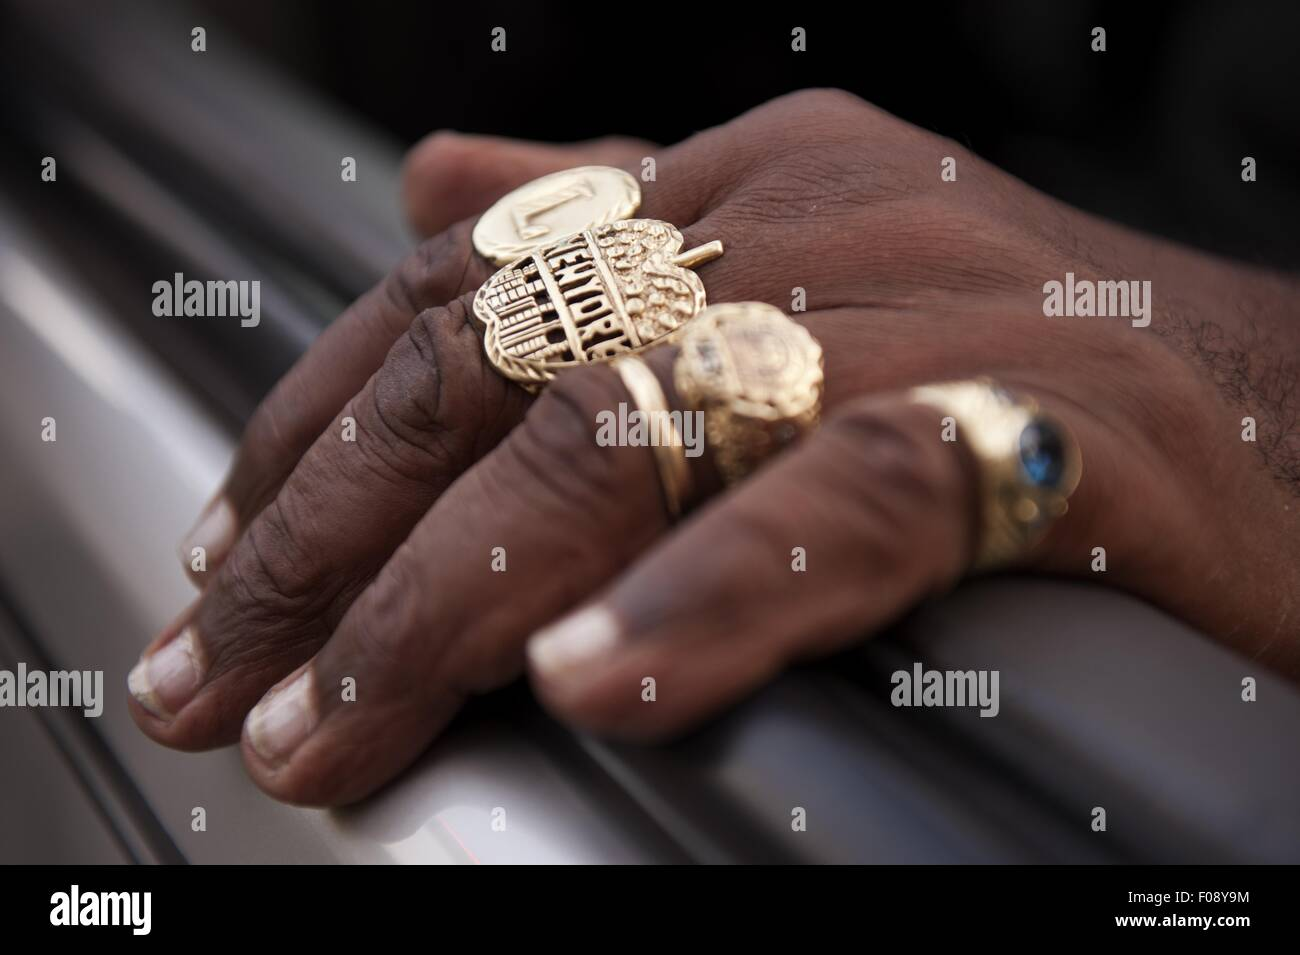 Close Up Of Manu0027s Hand Wearing Gold Rings In New York, USA